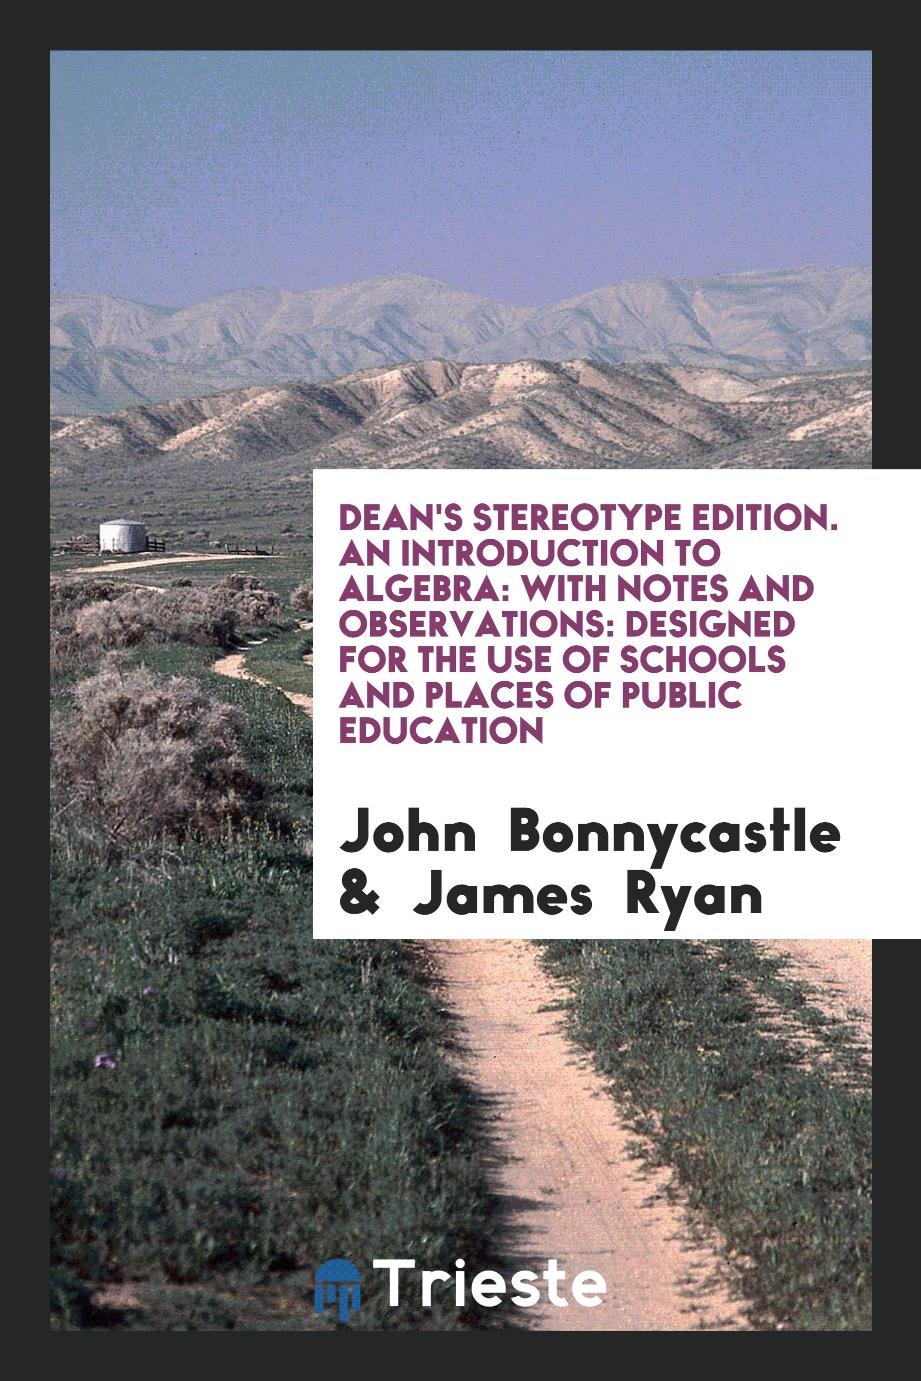 Dean's Stereotype Edition. An Introduction to Algebra: With Notes and Observations: Designed for the Use of Schools and Places of Public Education